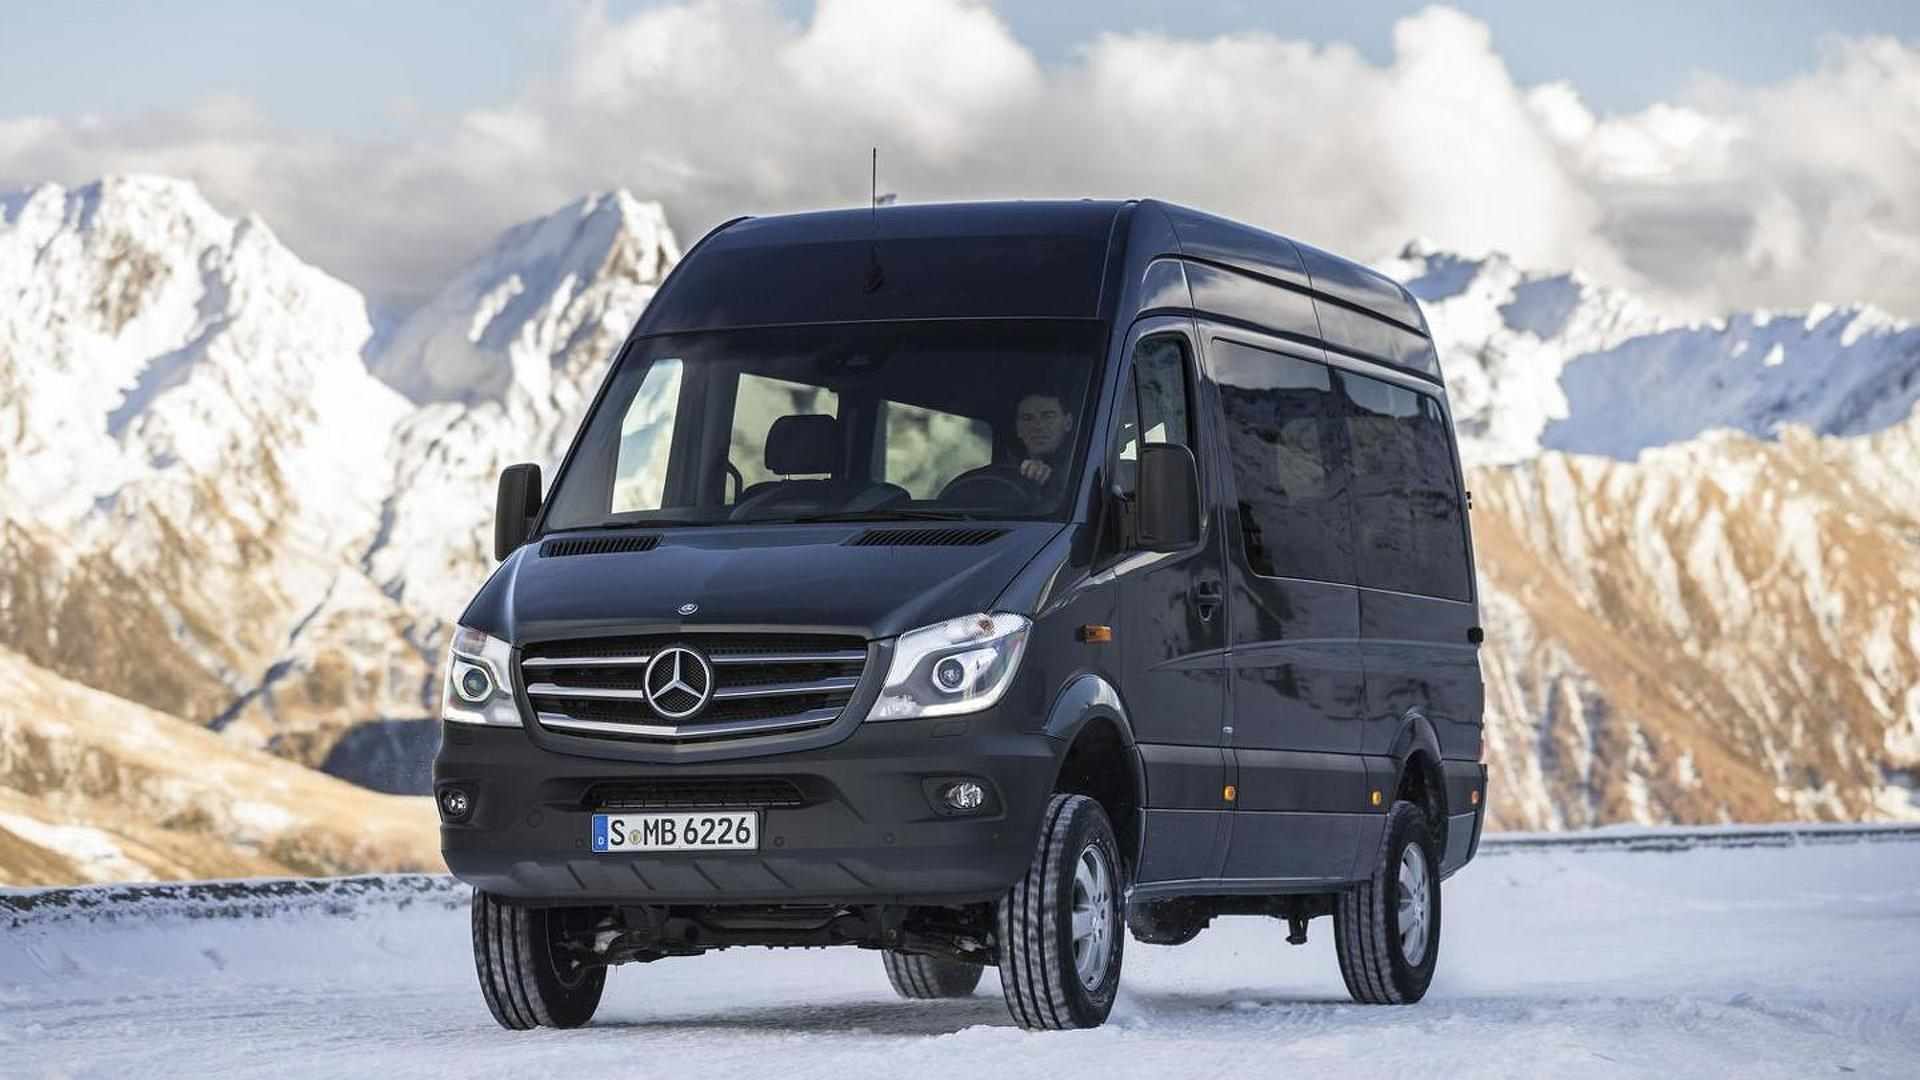 Mercedes Sprinter 4X4 >> 2014 Mercedes Sprinter 4x4 Announced Just In Time For Winter